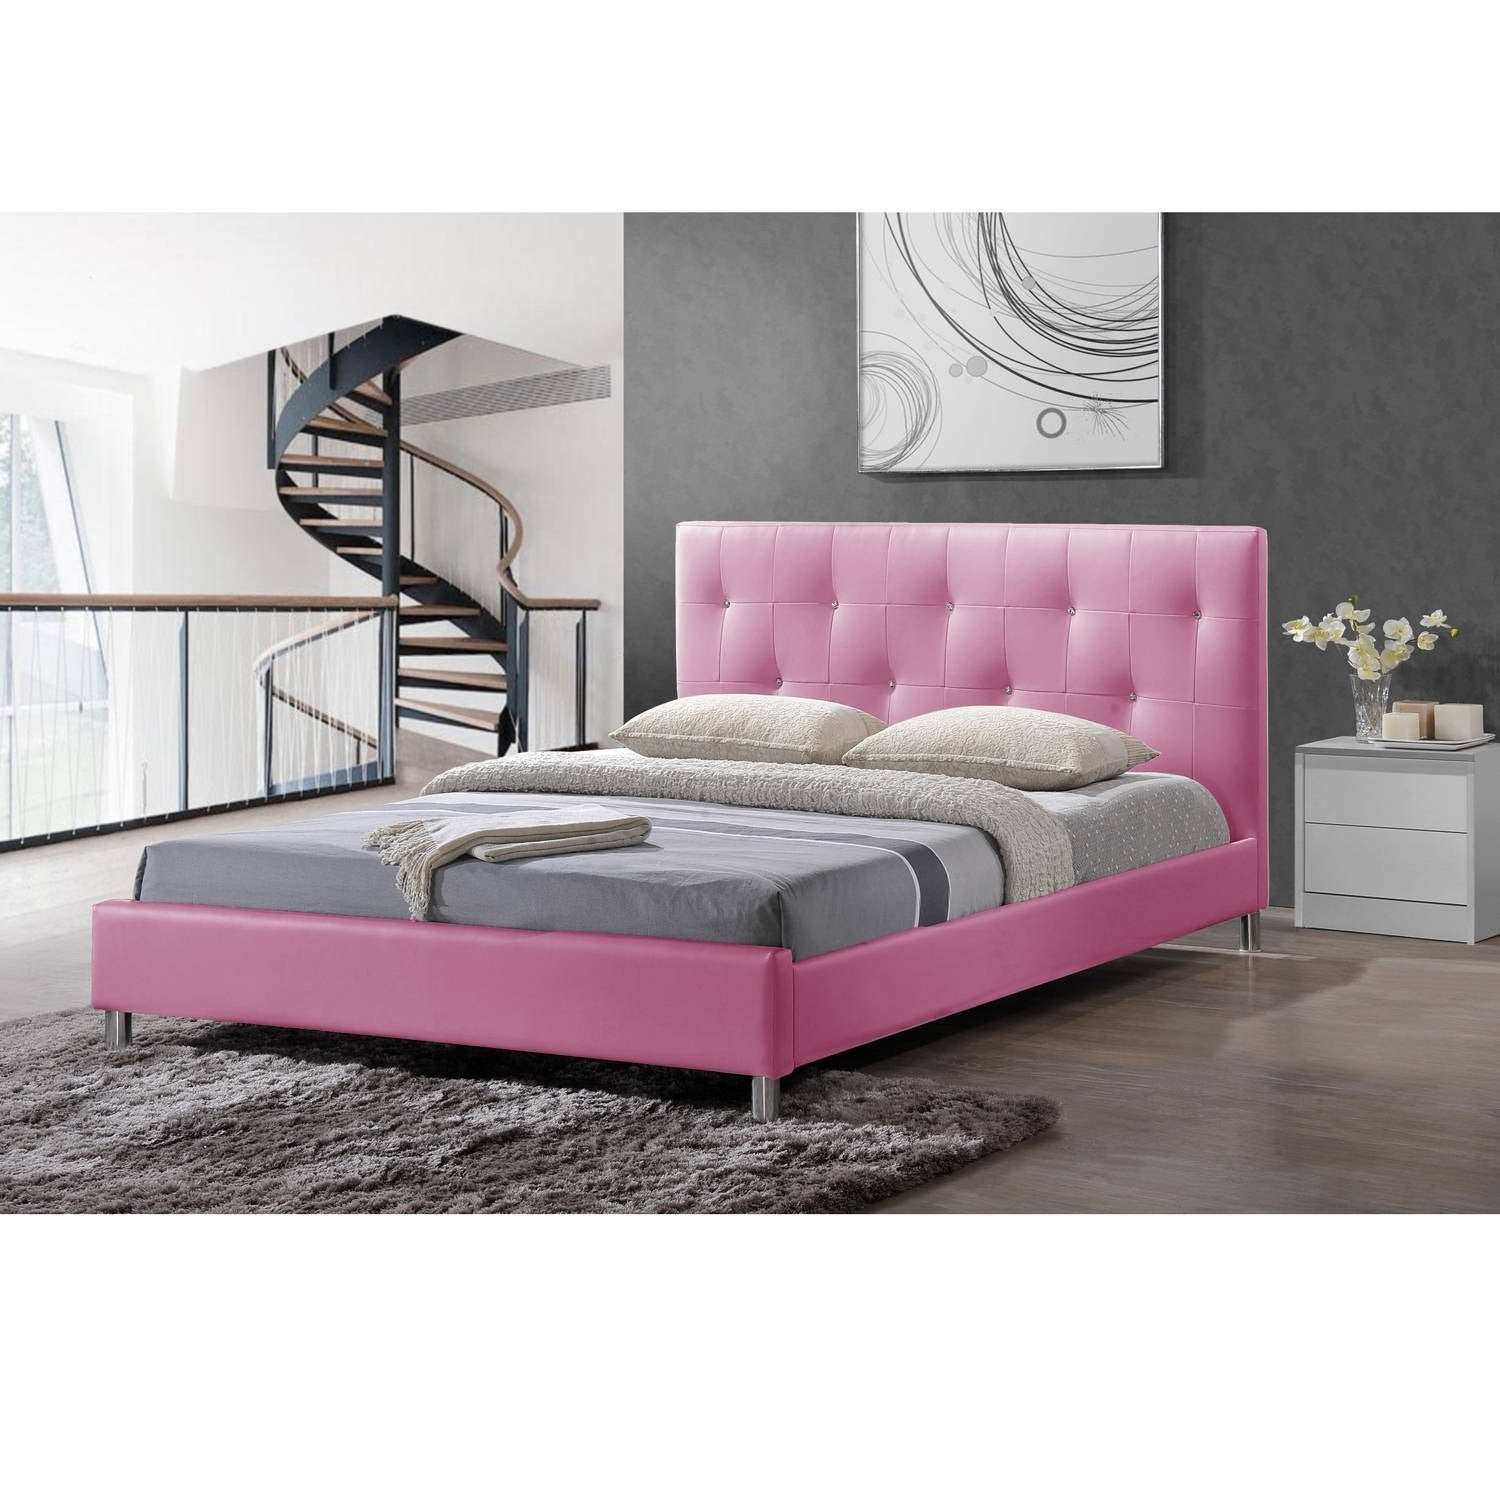 Baxton Studio Barbara Pink Modern Full-size Bed with Crys...